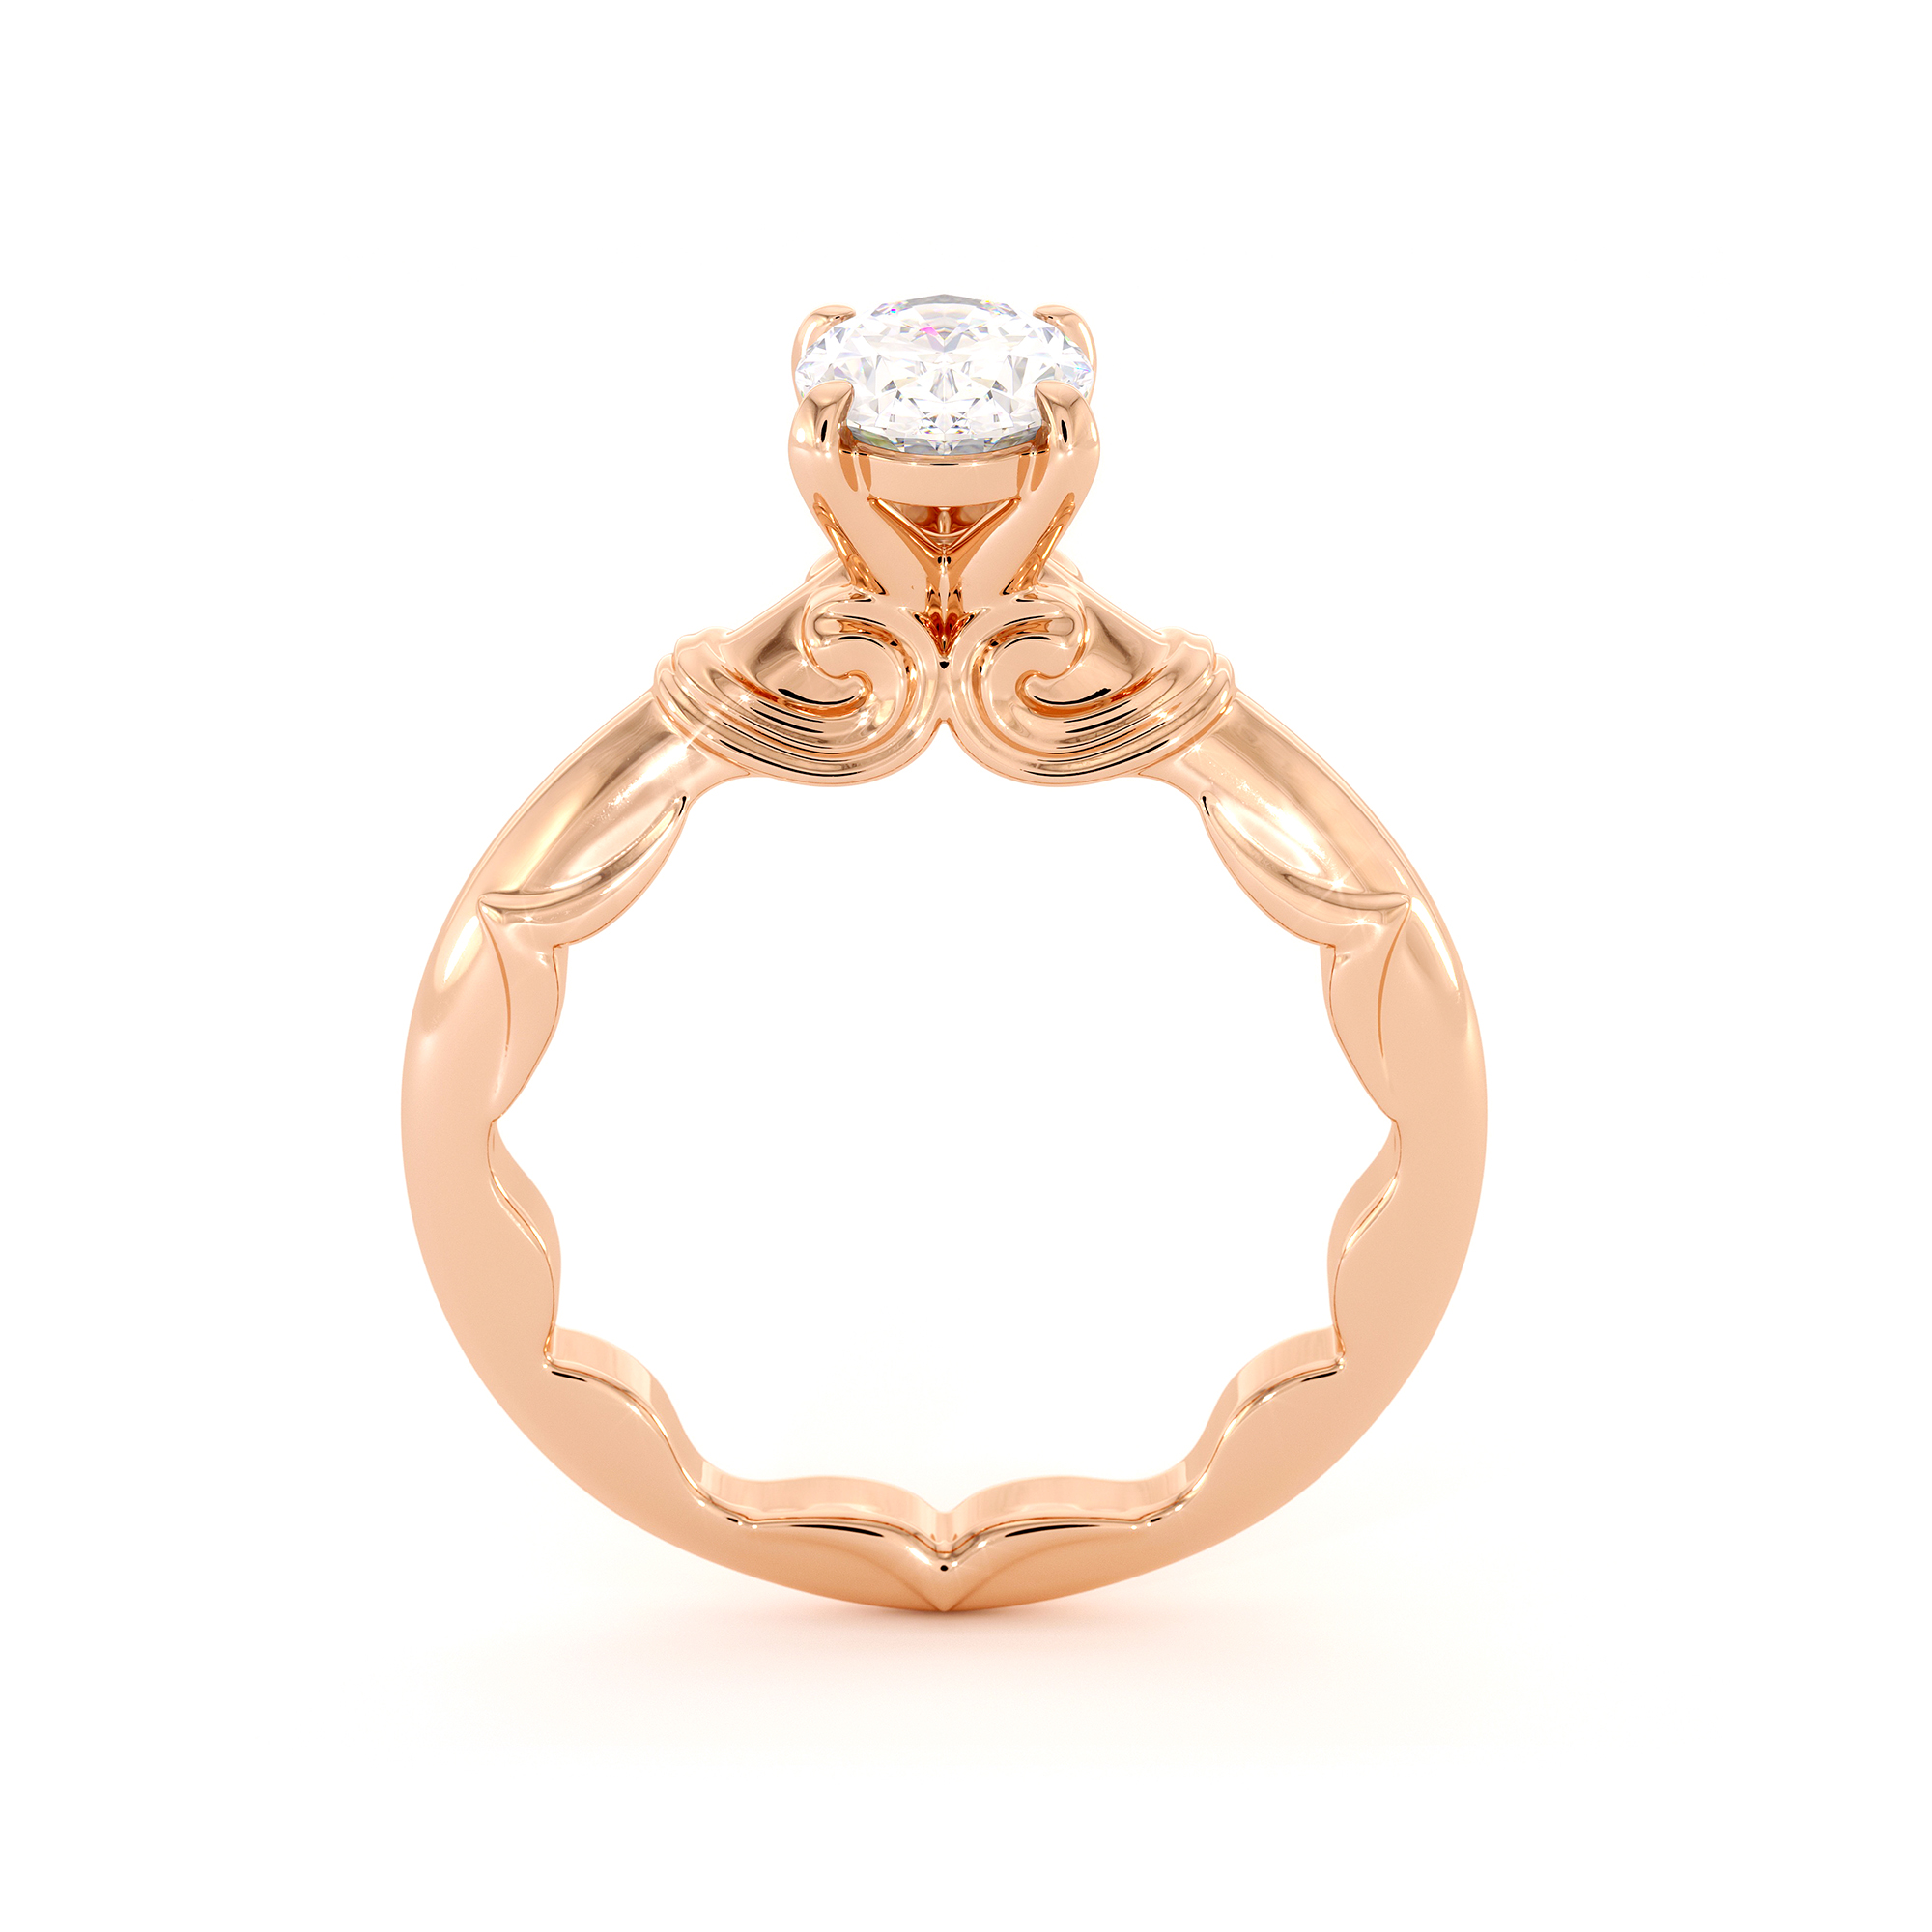 Solitaire Diamond Oval Engagement Ring Lab Grown Diamond Rose Gold Ring 1-1.5 Ct Diamond Ring